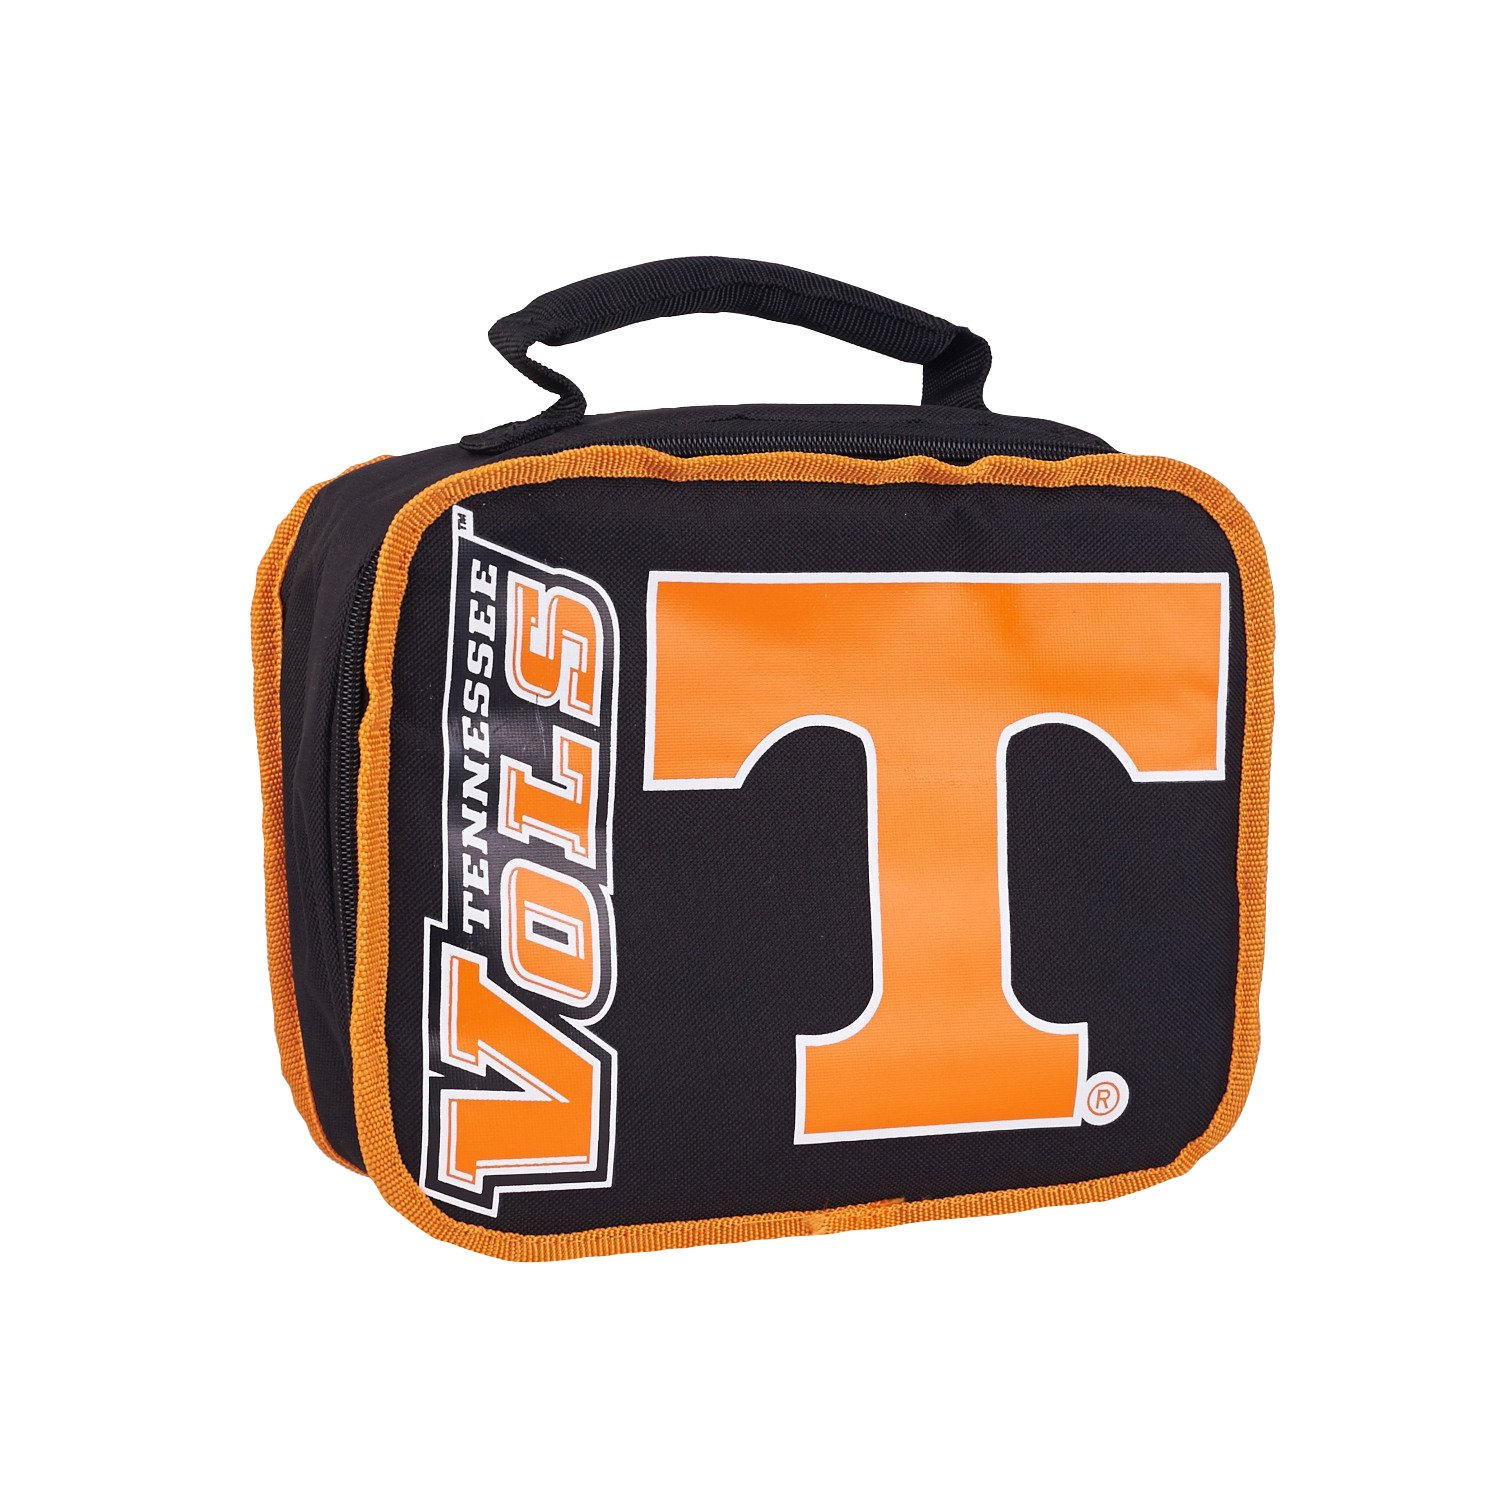 Officially Licensed NCAA Tennessee Volunteers Sacked Lunch Cooler